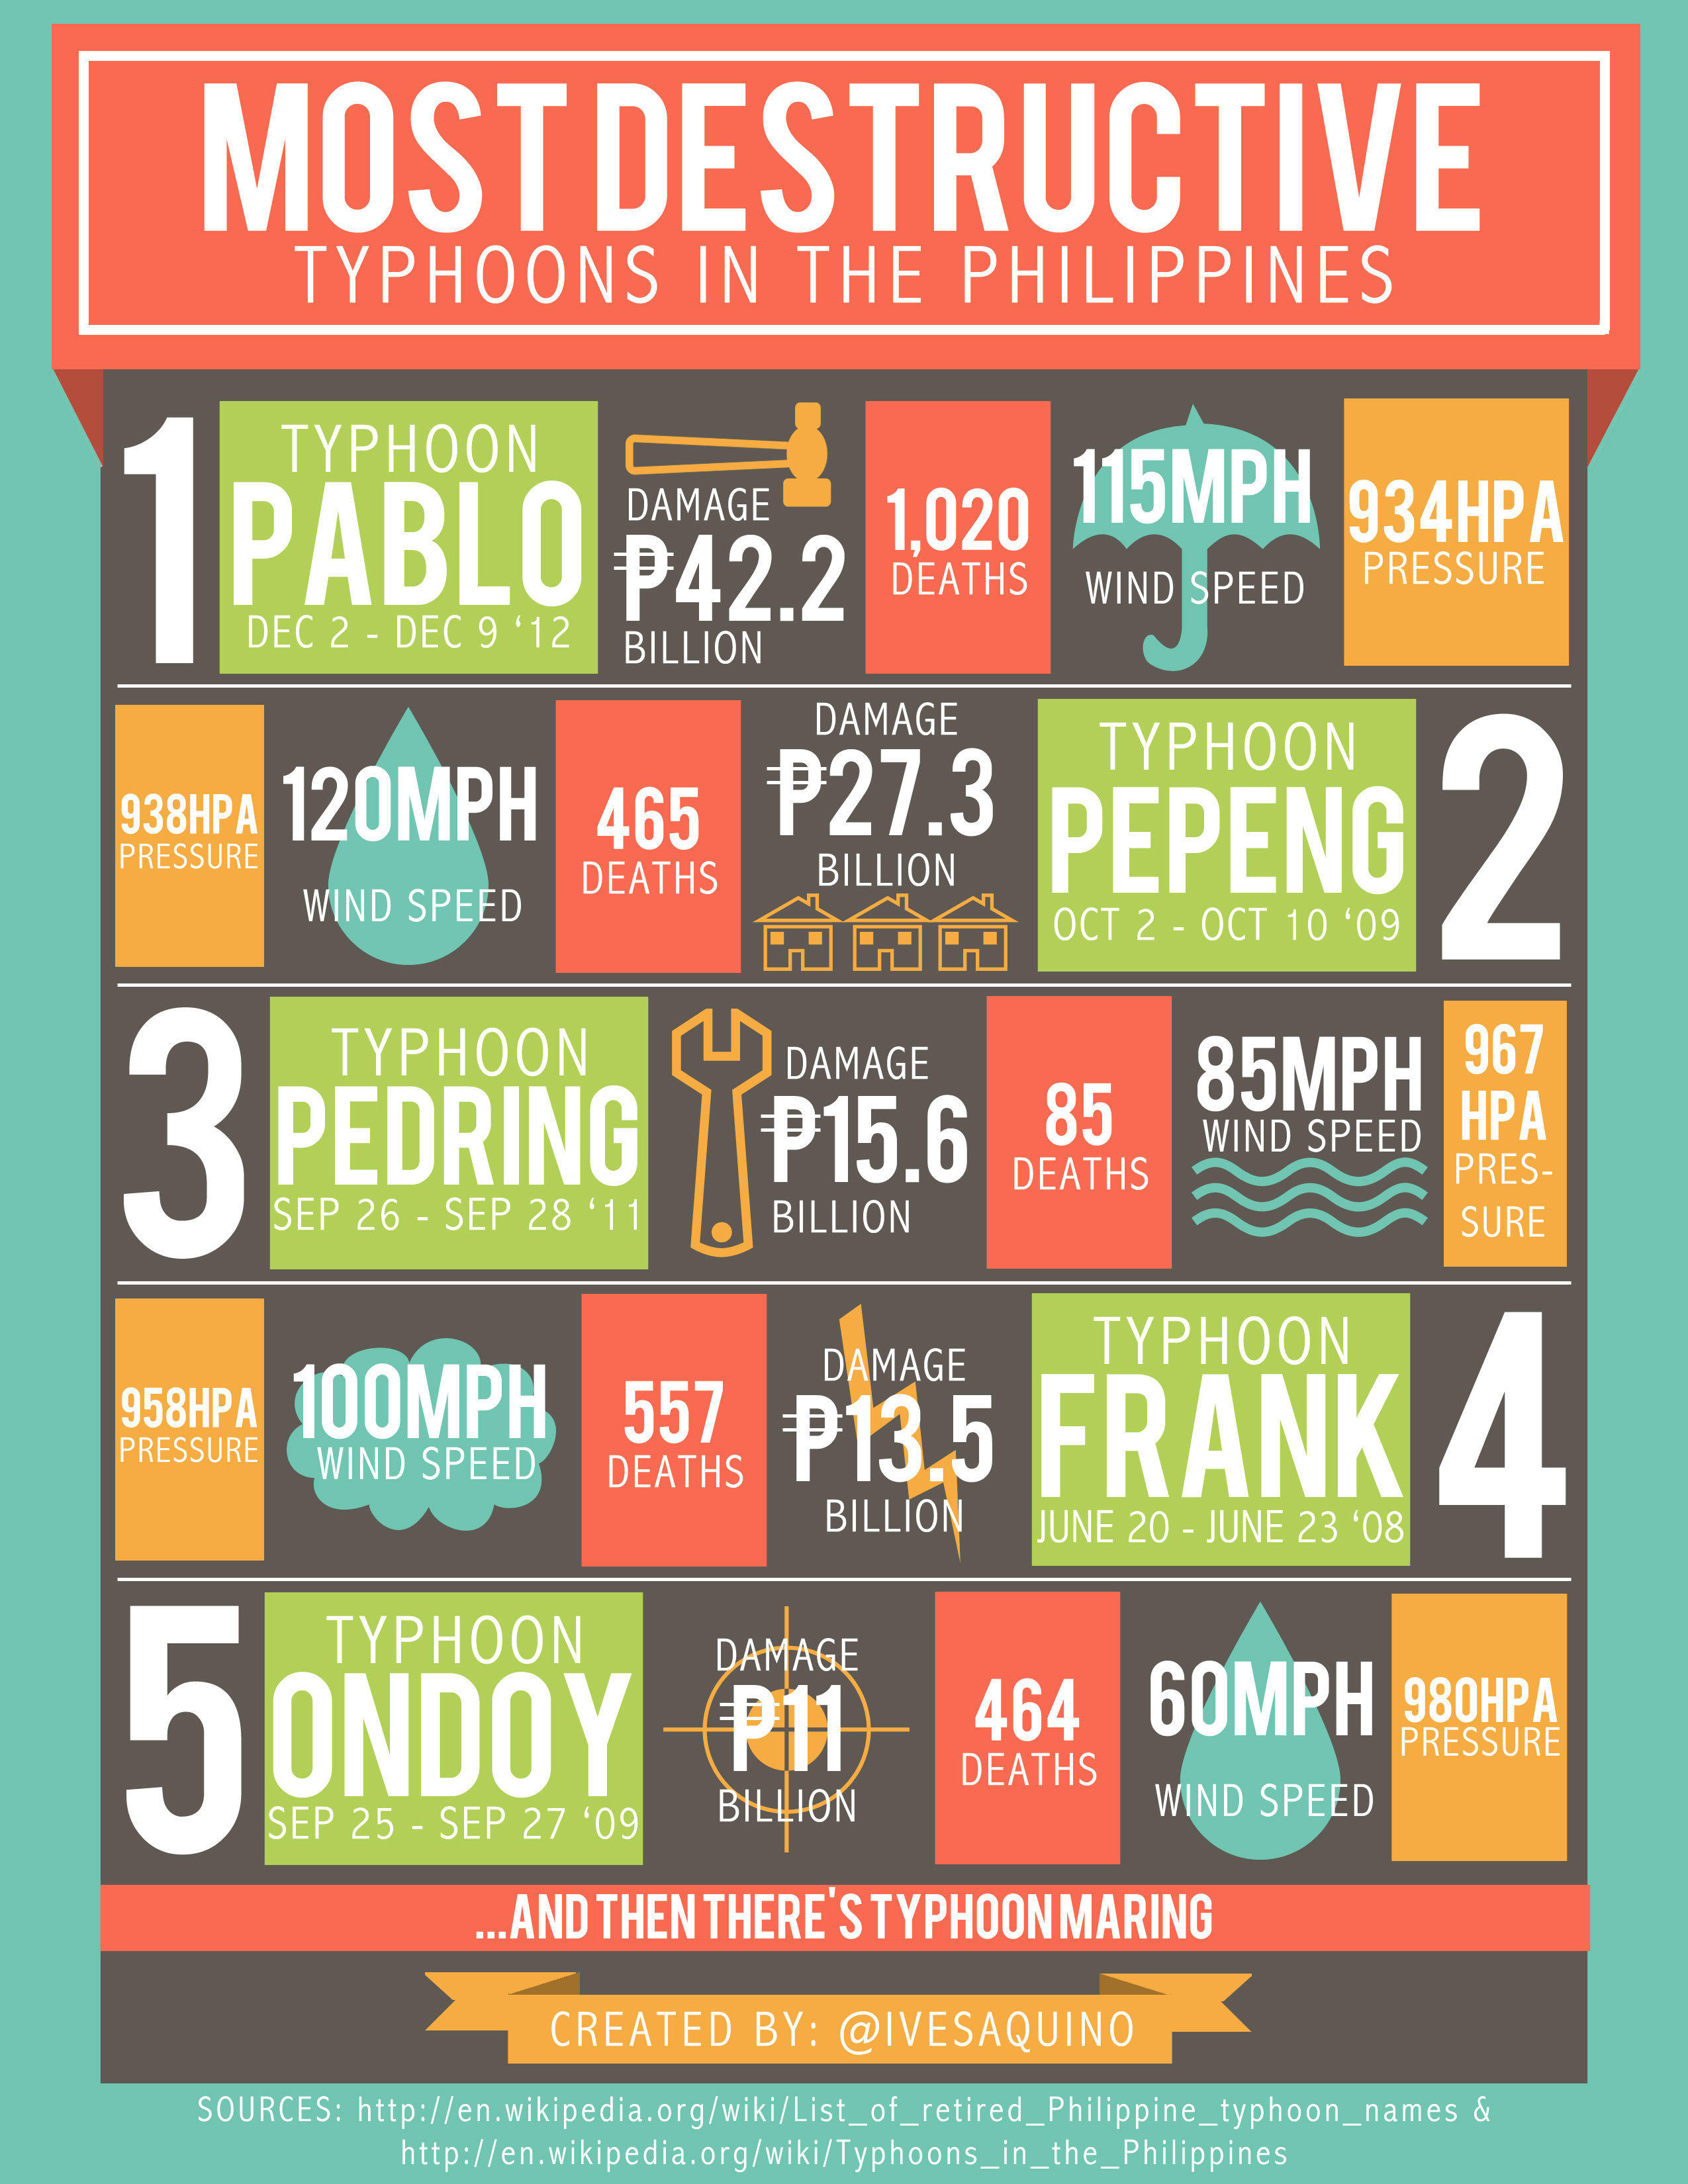 most-destructive-typhoons-in-the-philippines_5213943b070bc